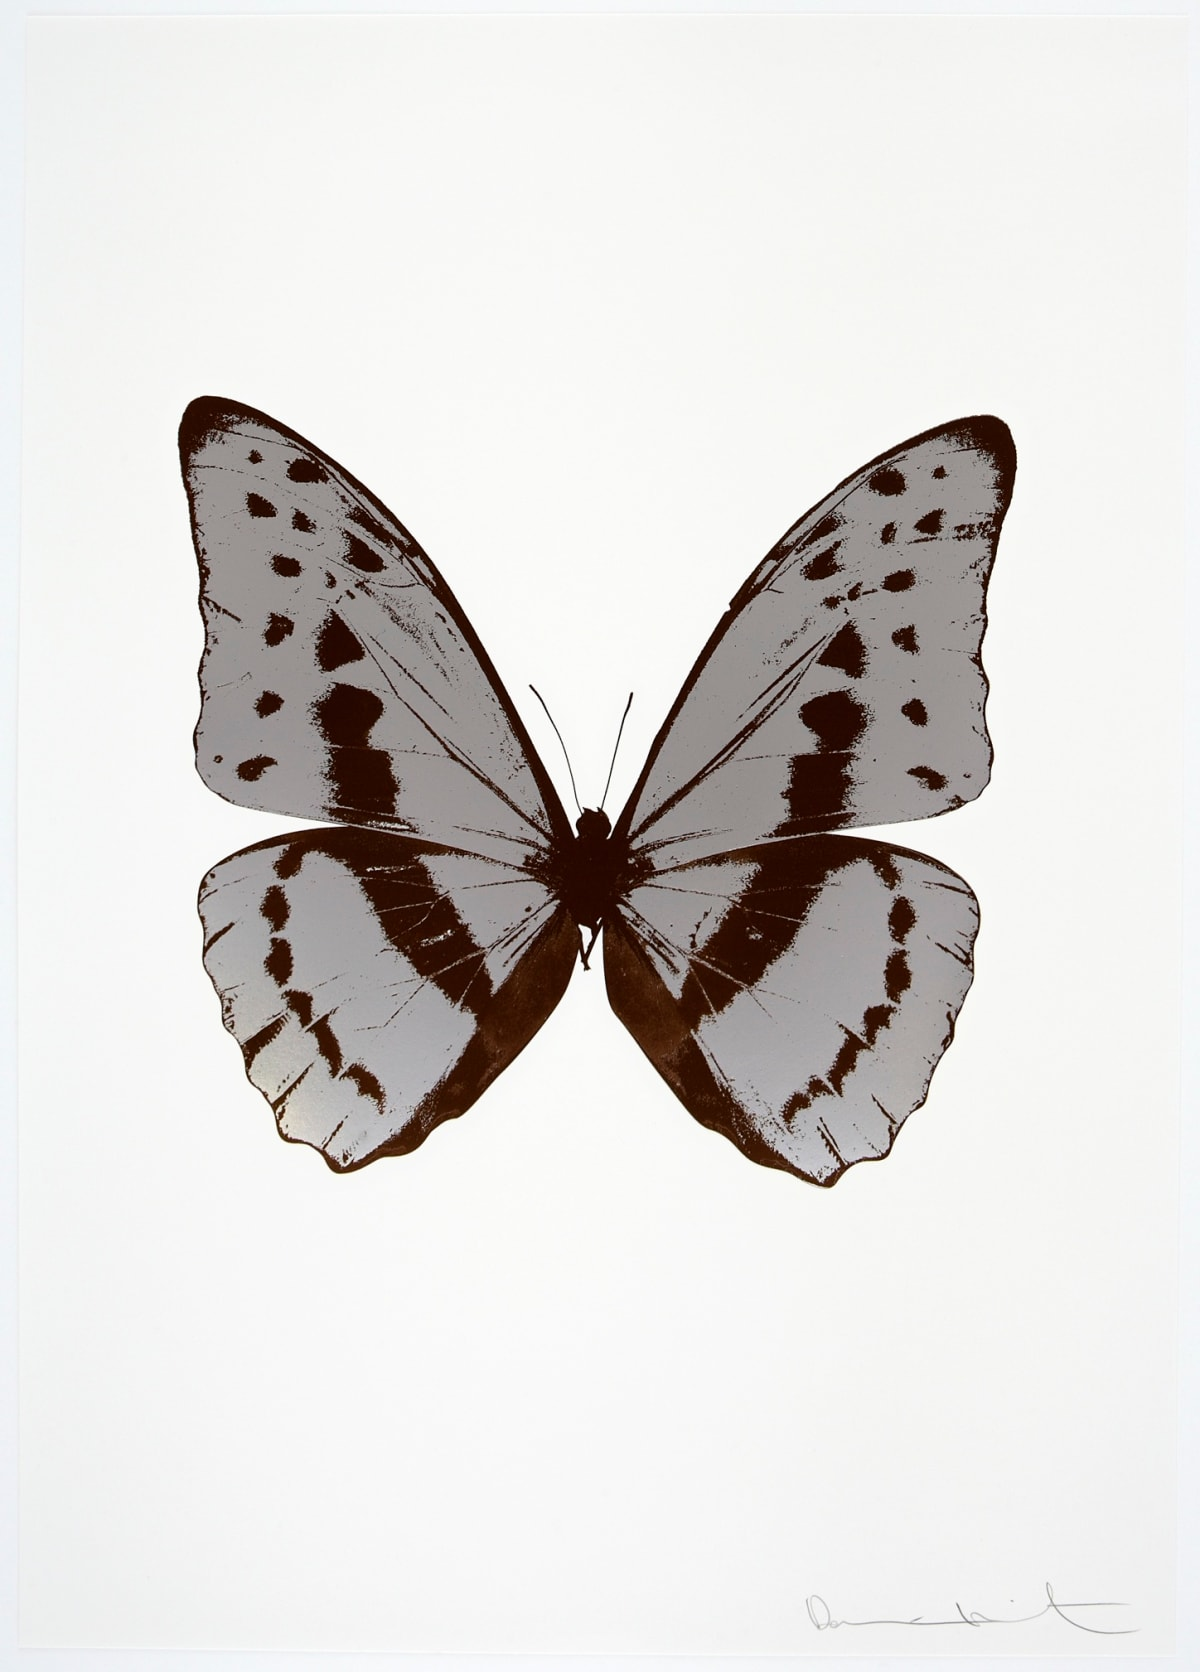 Damien Hirst The Souls III - Silver Gloss/Chocolate/Chocolate, 2010 2 colour foil block on 300gsm Arches 88 archival paper. Signed and numbered. Published by Paul Stolper and Other Criteria 72 x 51cm OC7923 / 660-26 Edition of 15